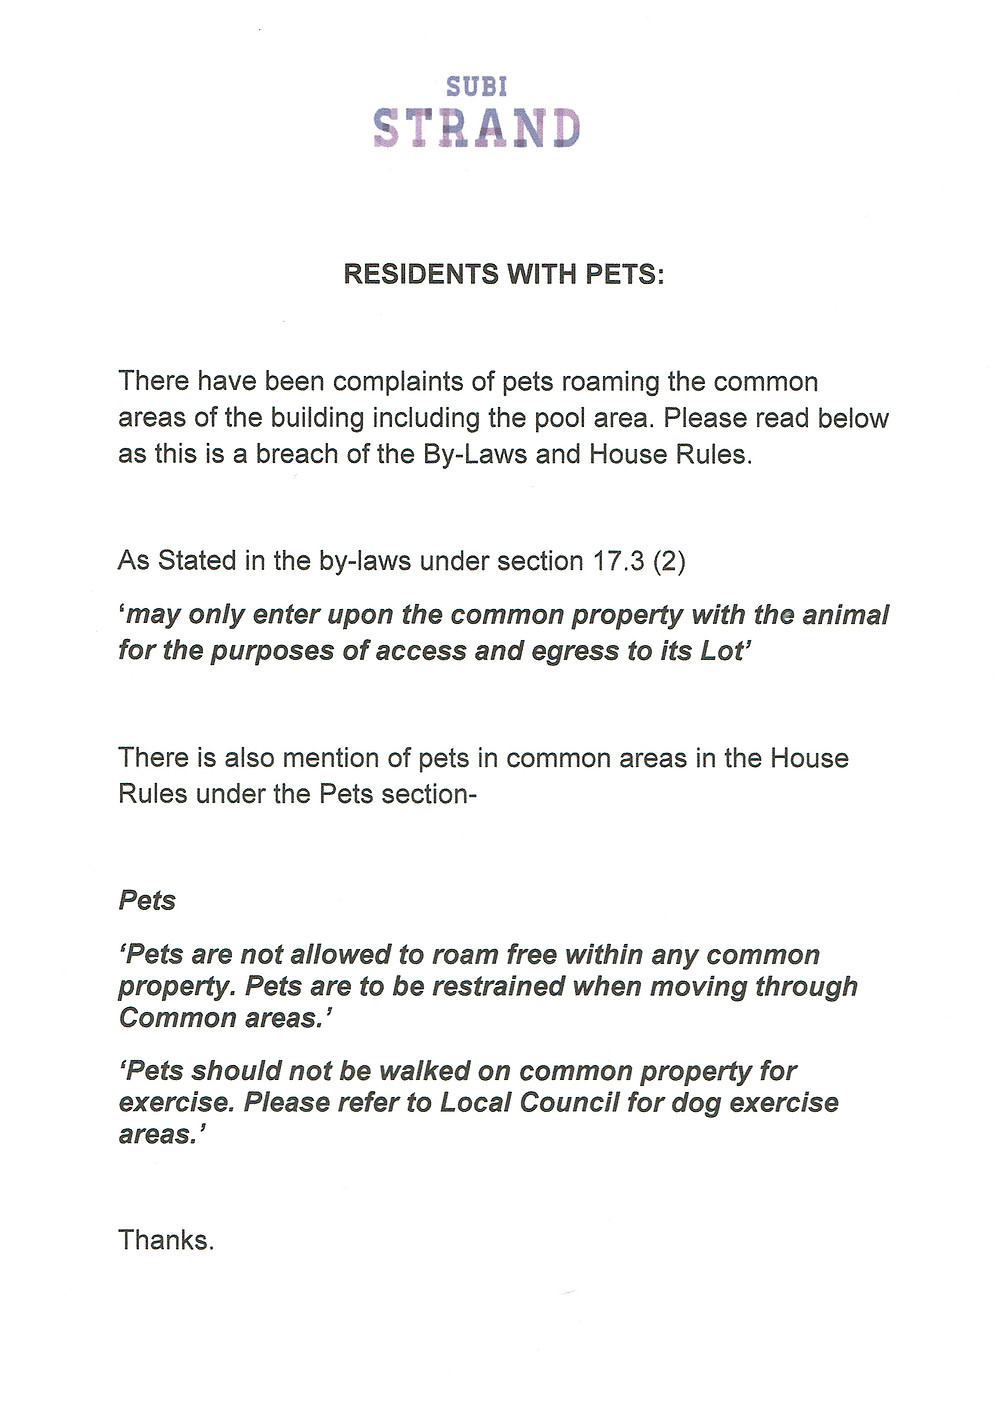 Residents with pets: